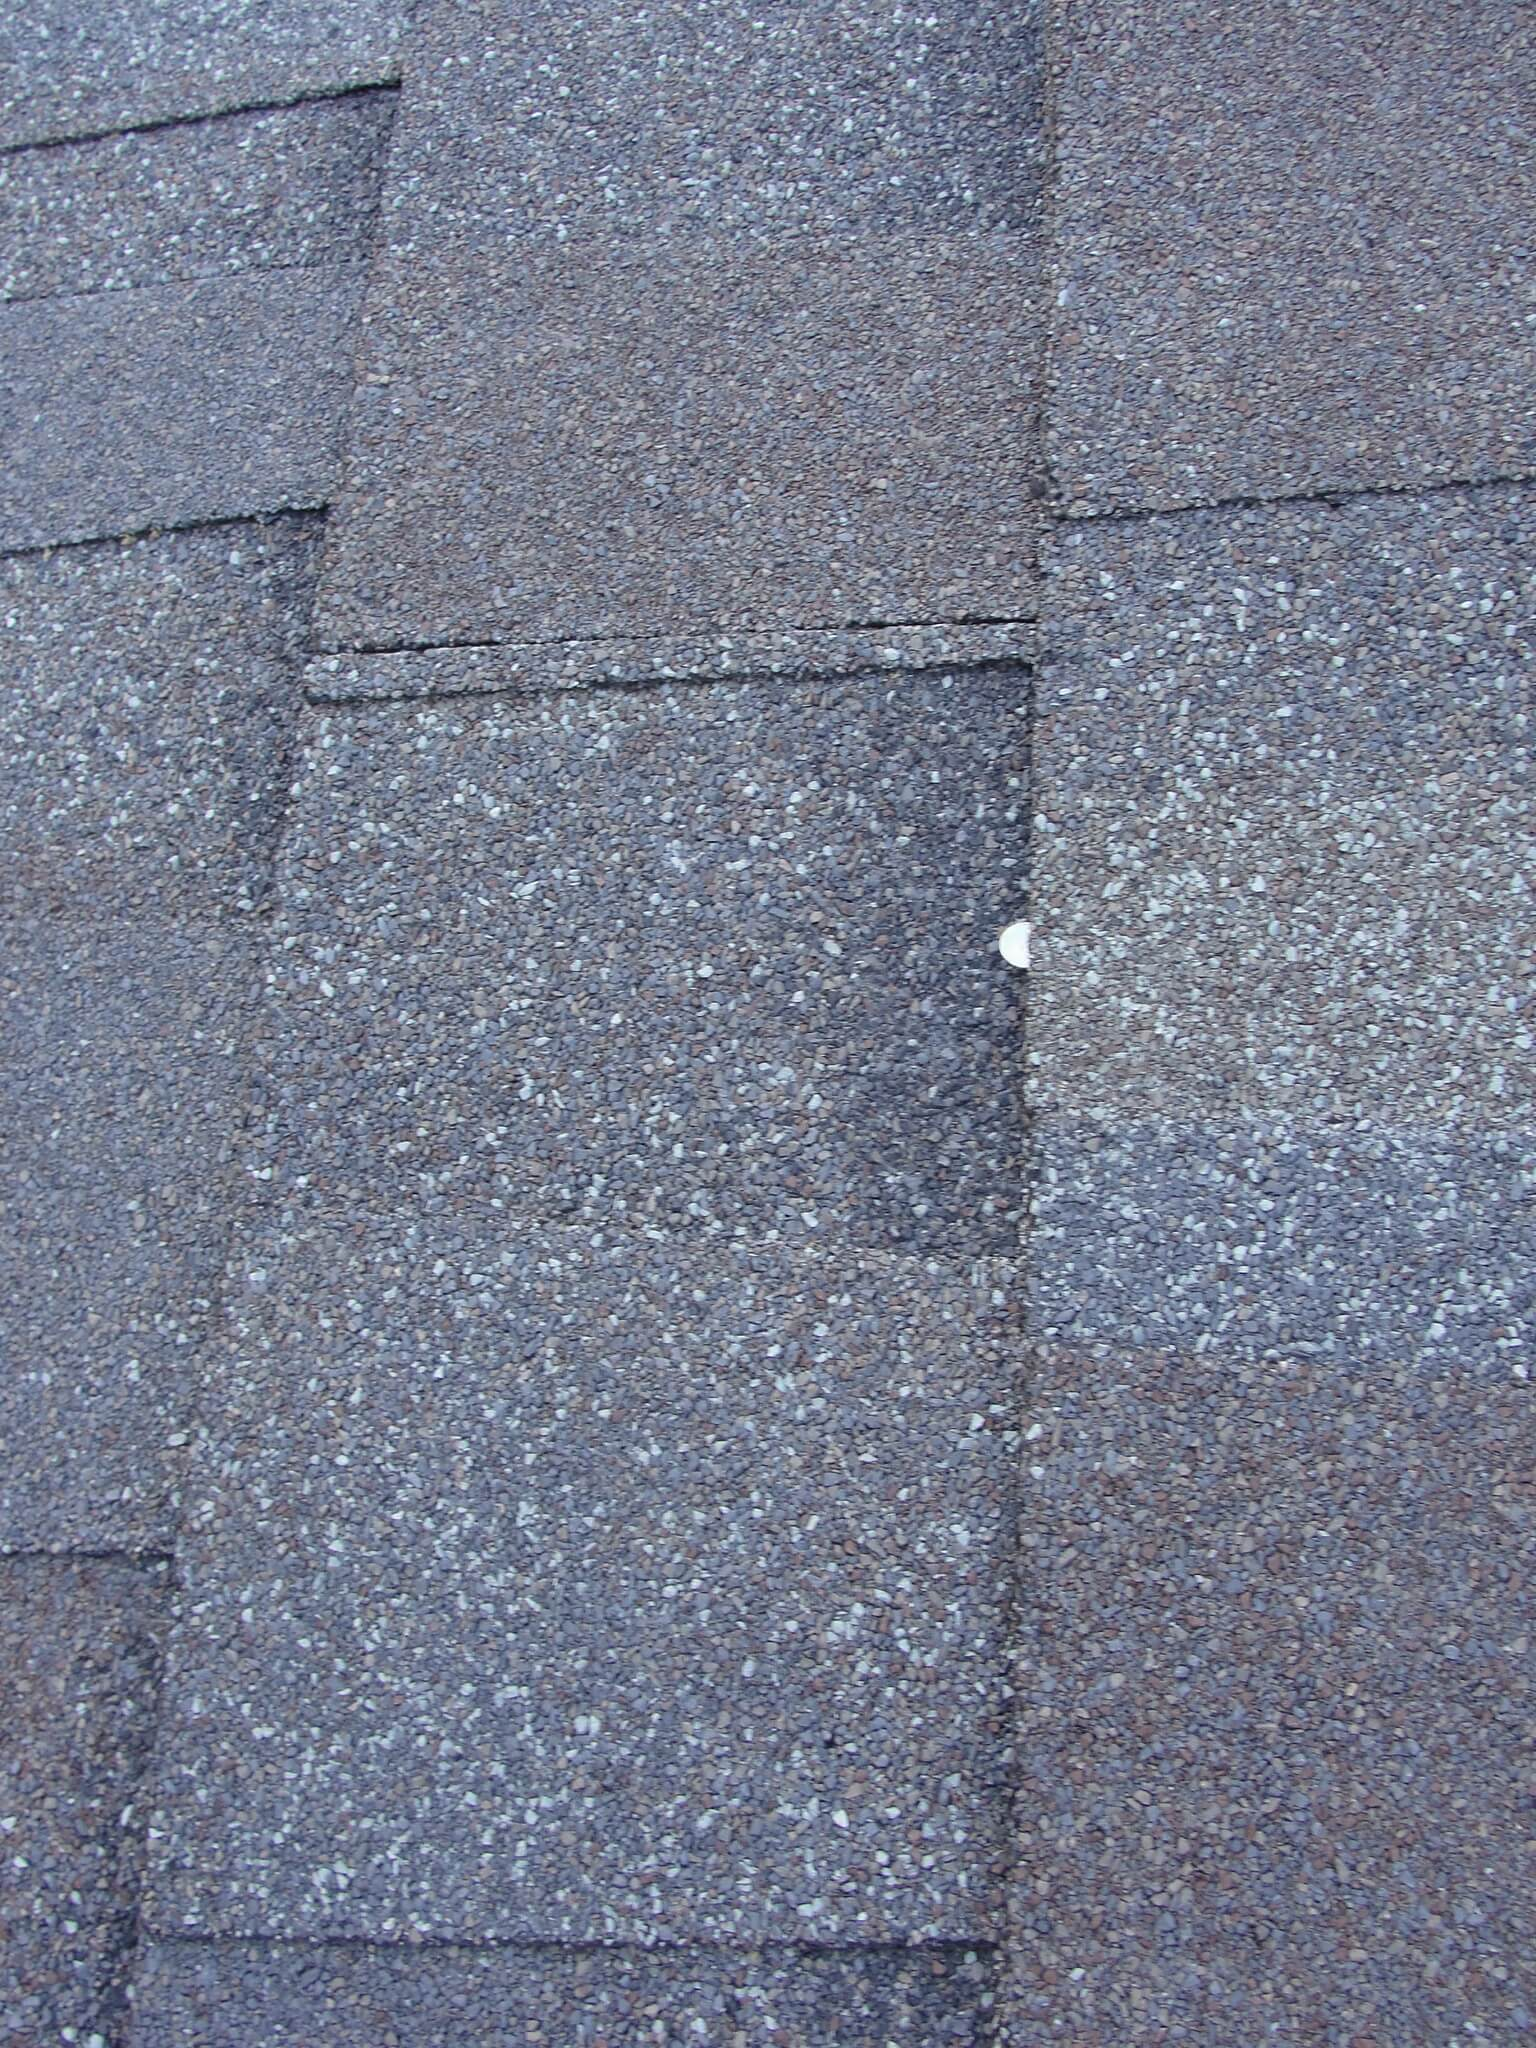 Improper Shingle Nailing Defective Roof Installation